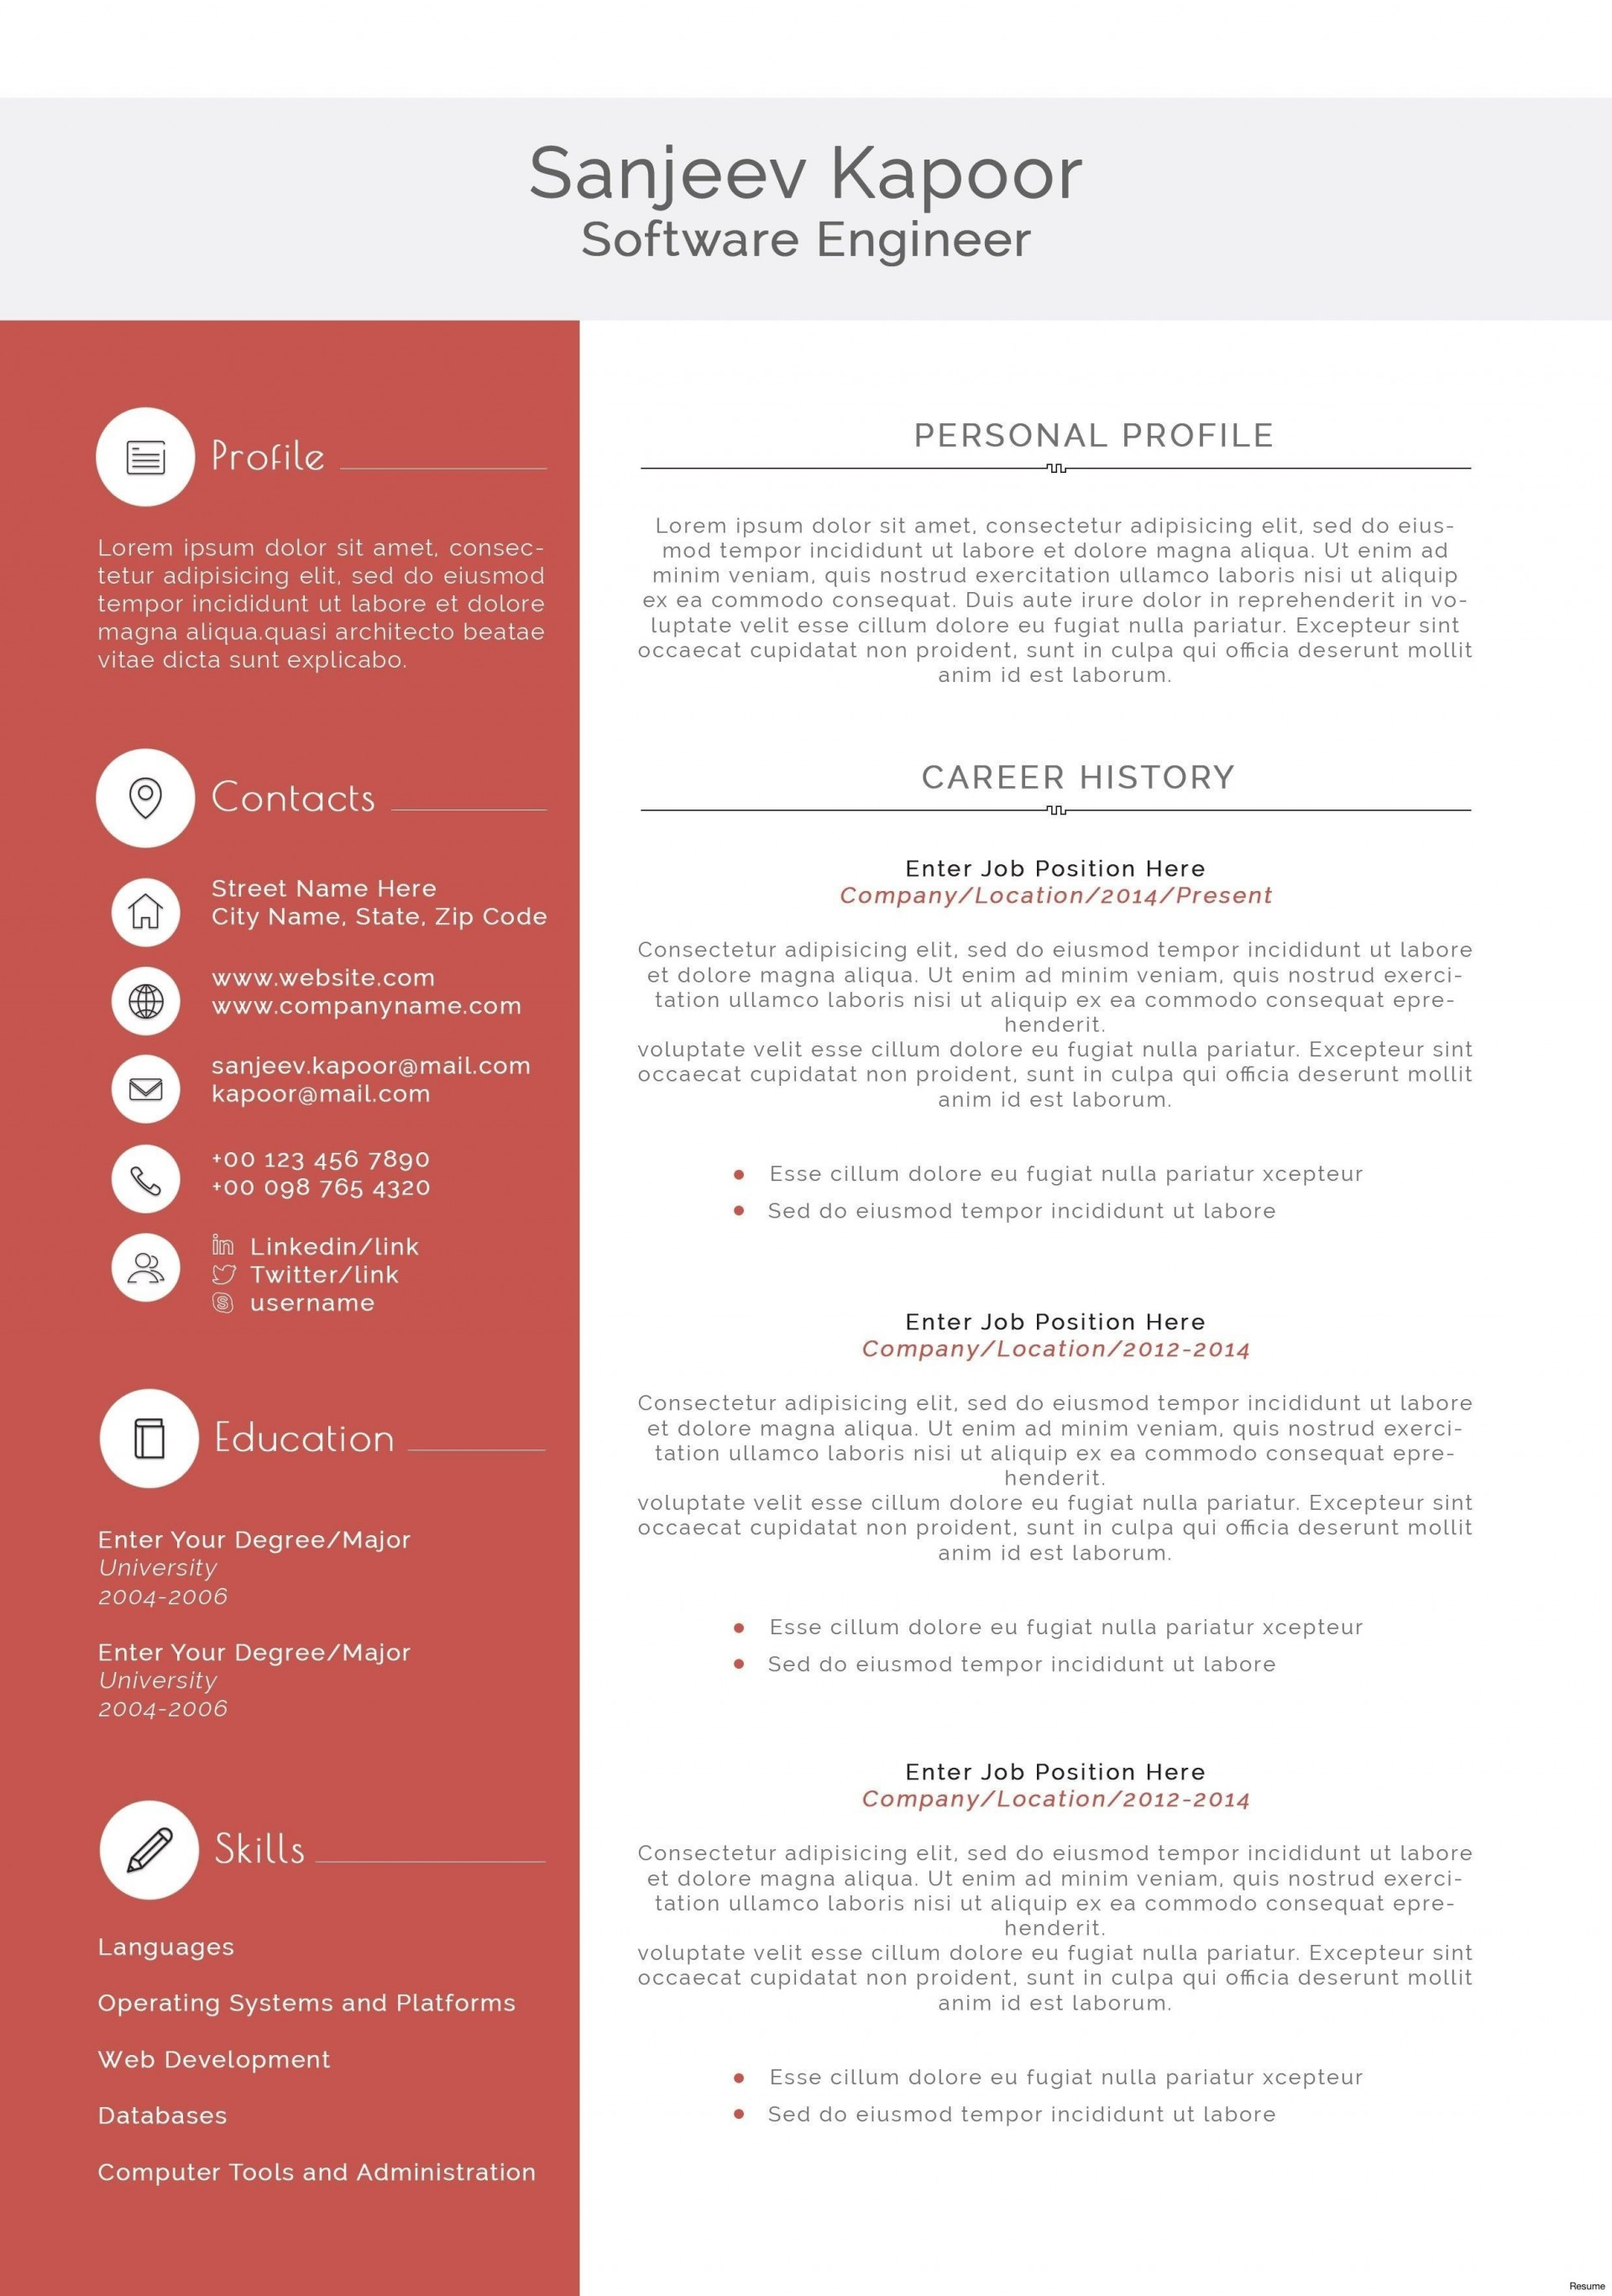 003 Stunning Software Engineer Resume Template Example  Word Format Free Download Microsoft1920